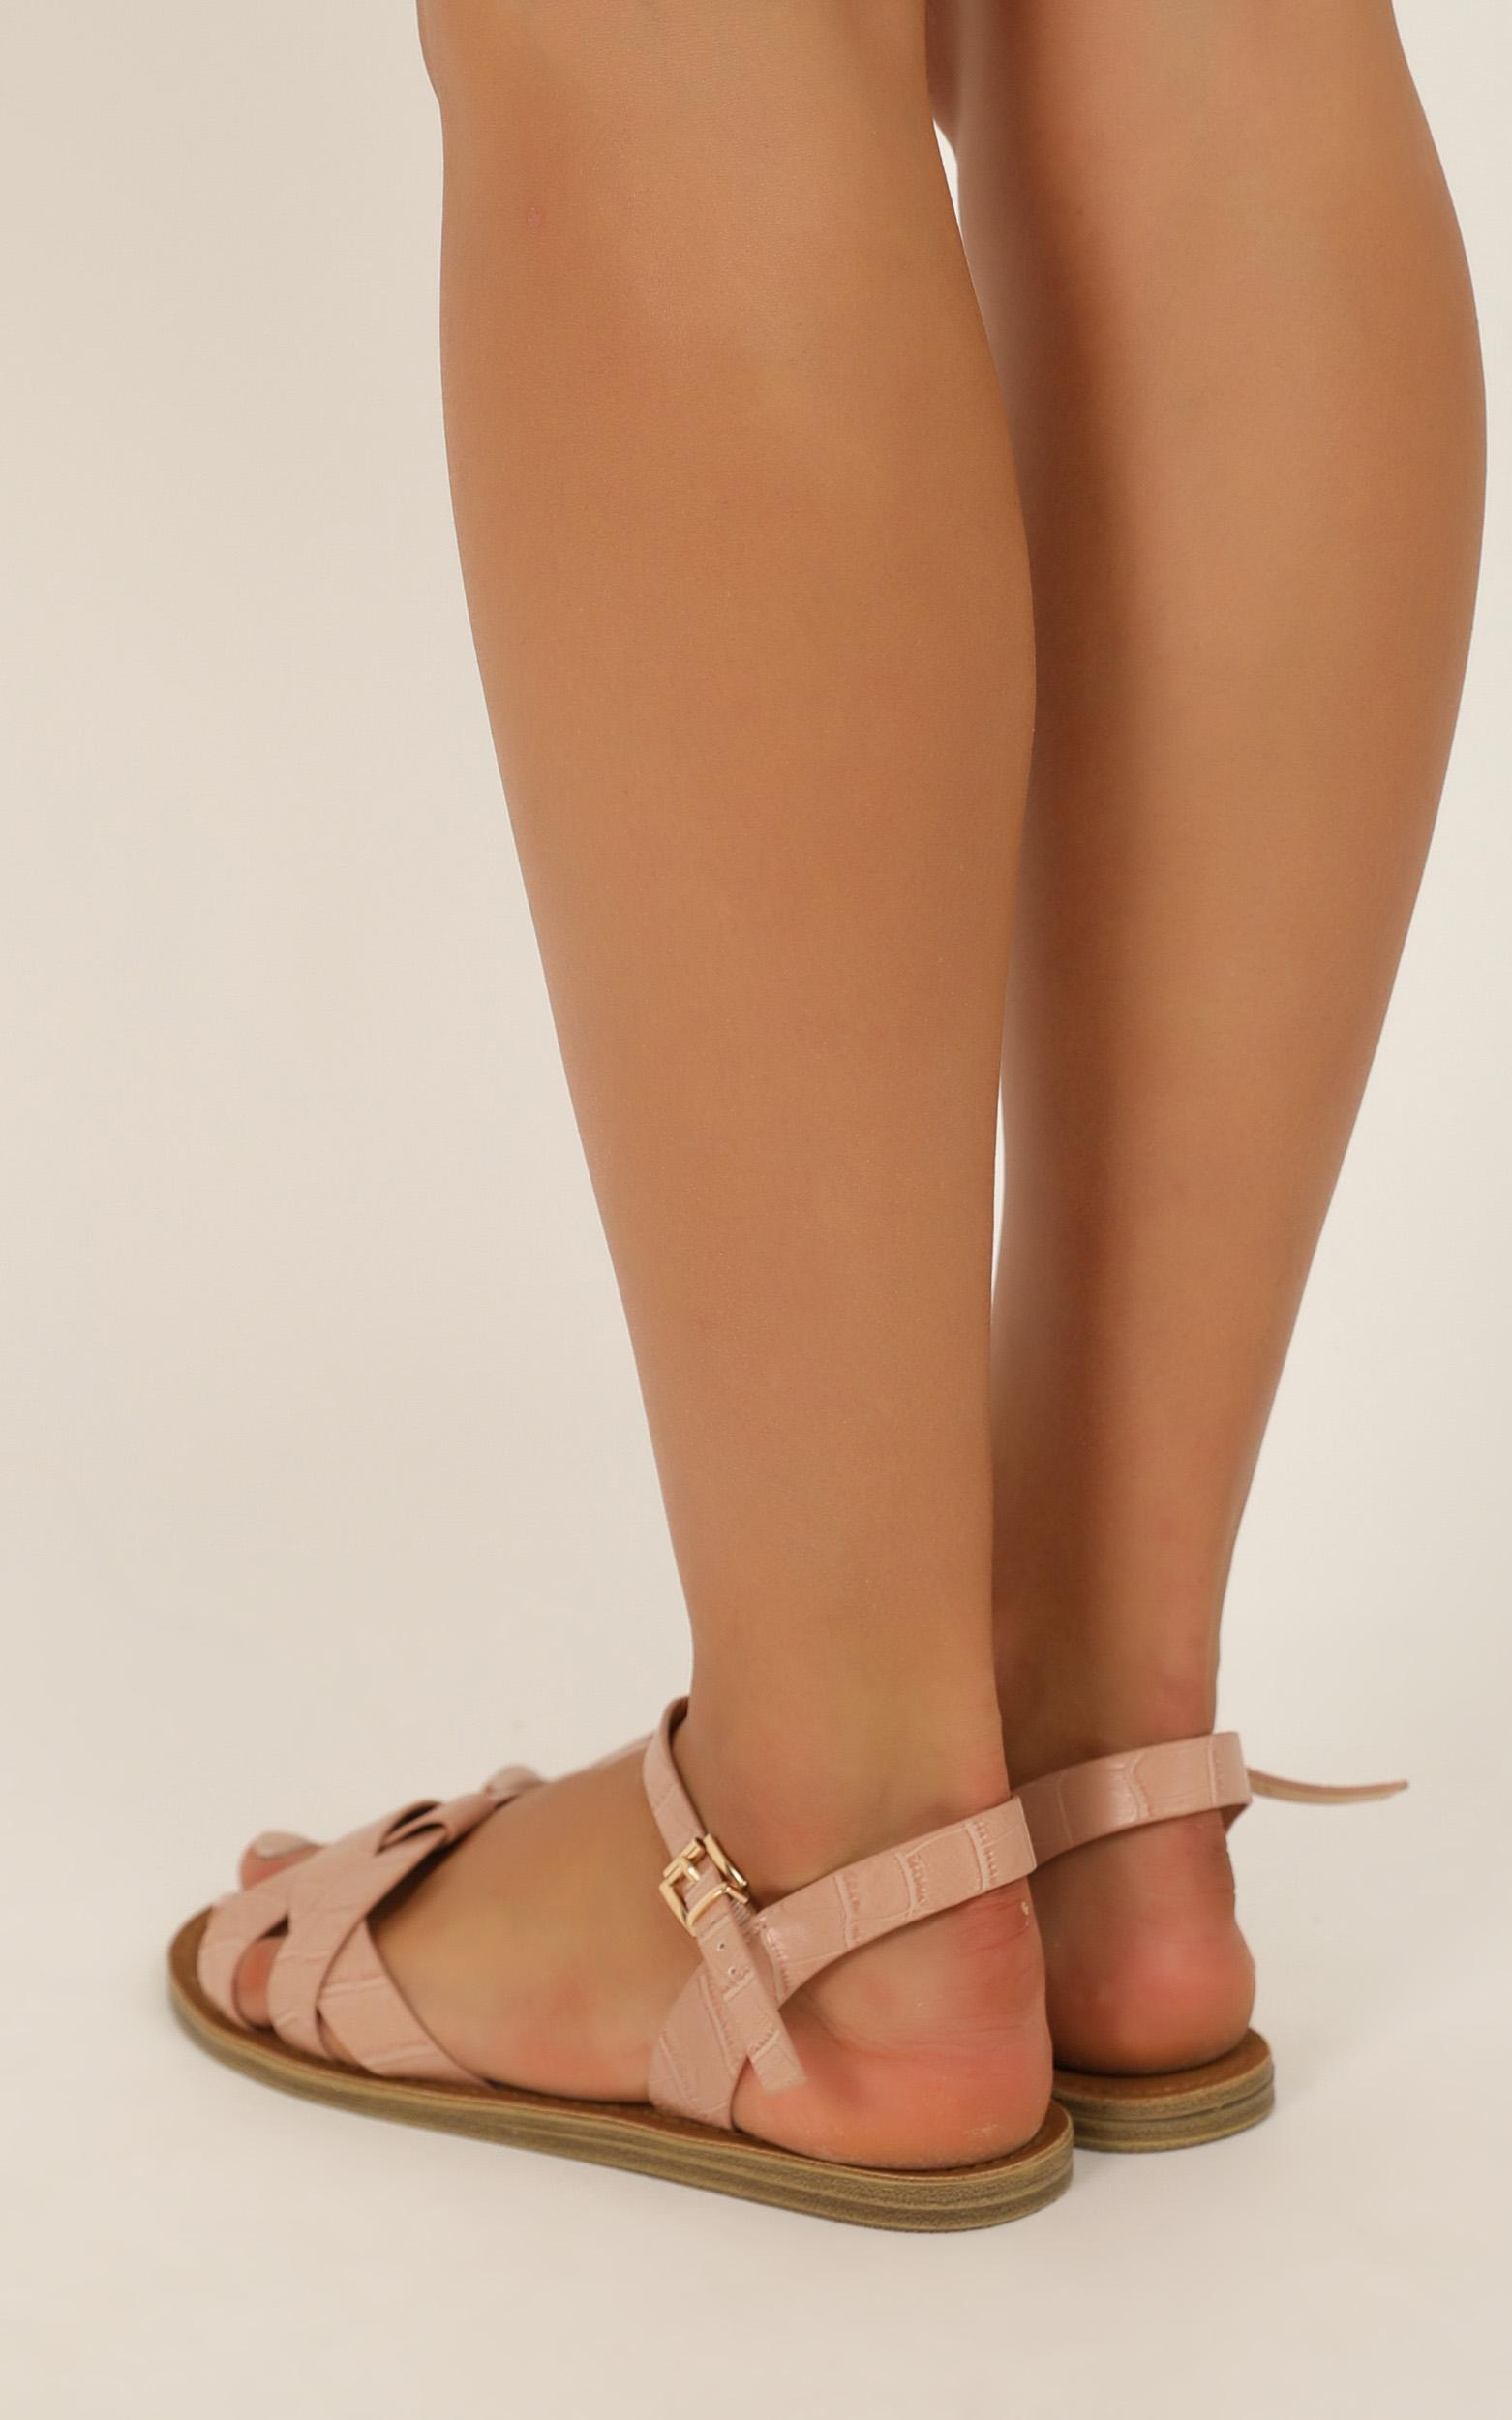 Verali - Toula Sandals in blush croc smooth - 10, Blush, hi-res image number null